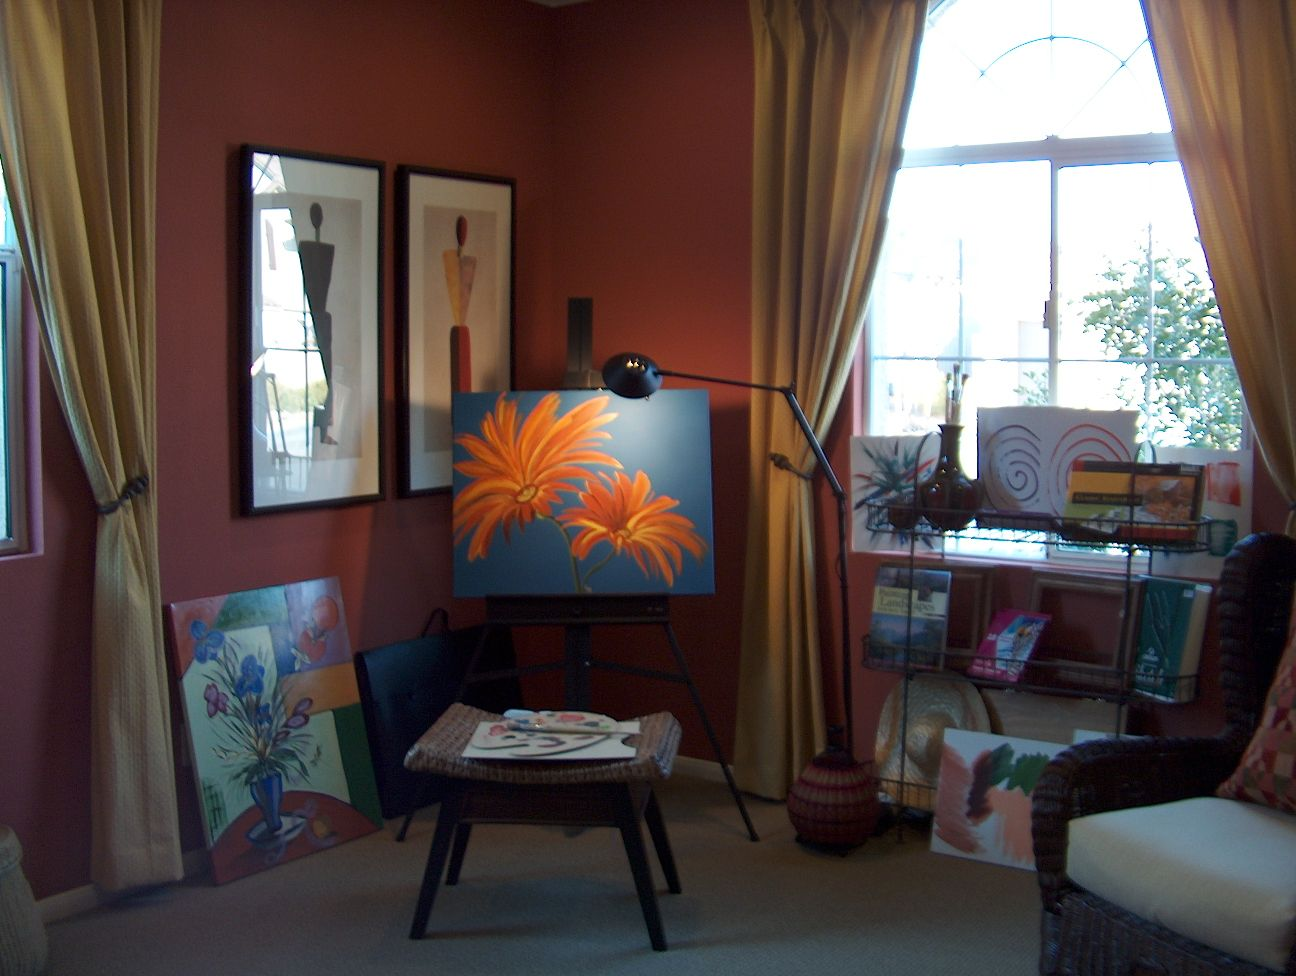 An Elegant art room